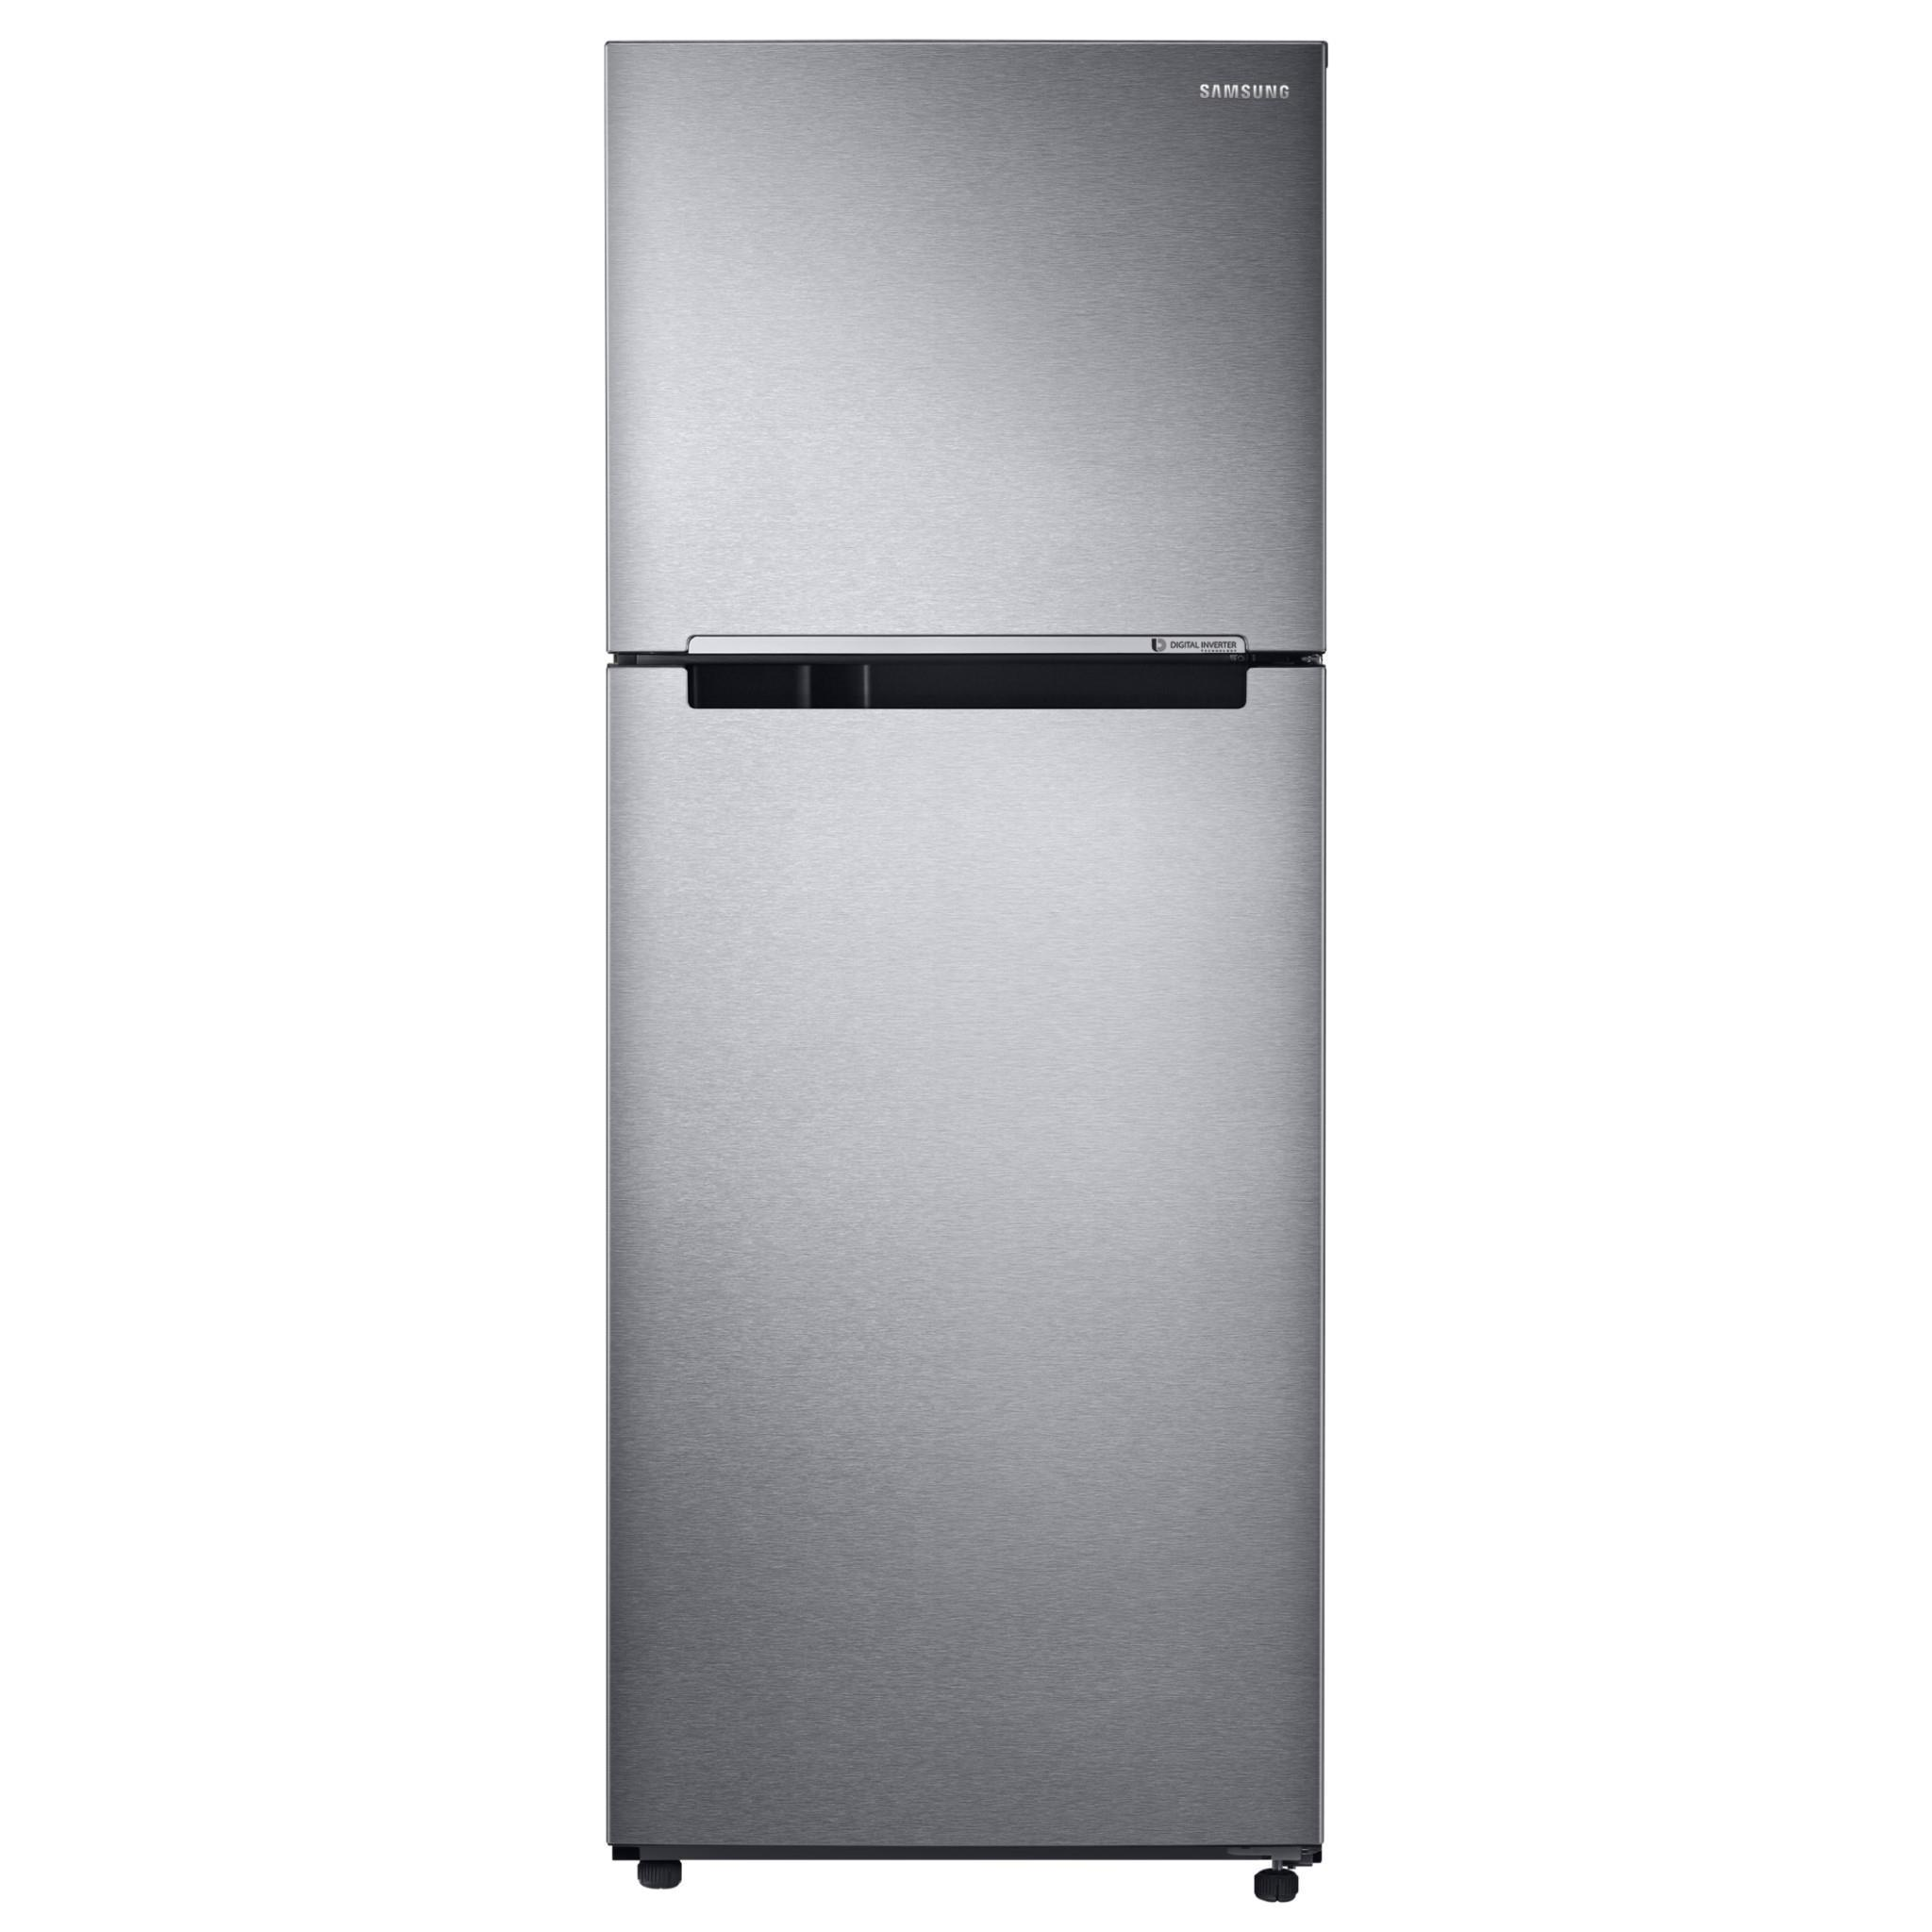 Samsung SR400LSTC 400L Top Mount Fridge (L/Steel)